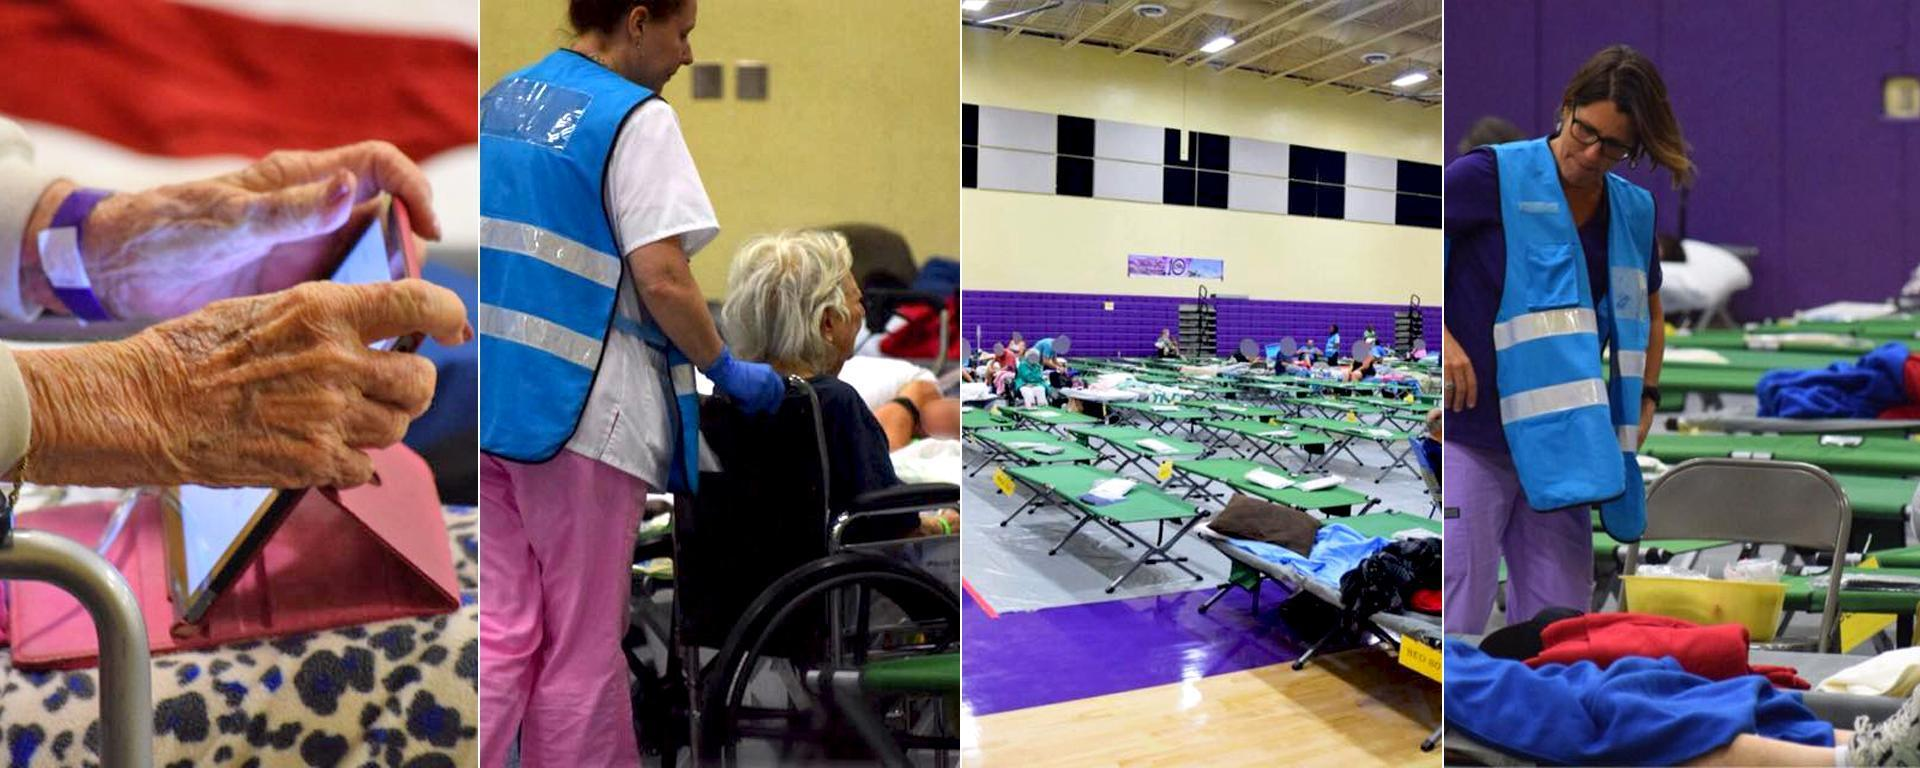 A photo of special needs evacuation assistance